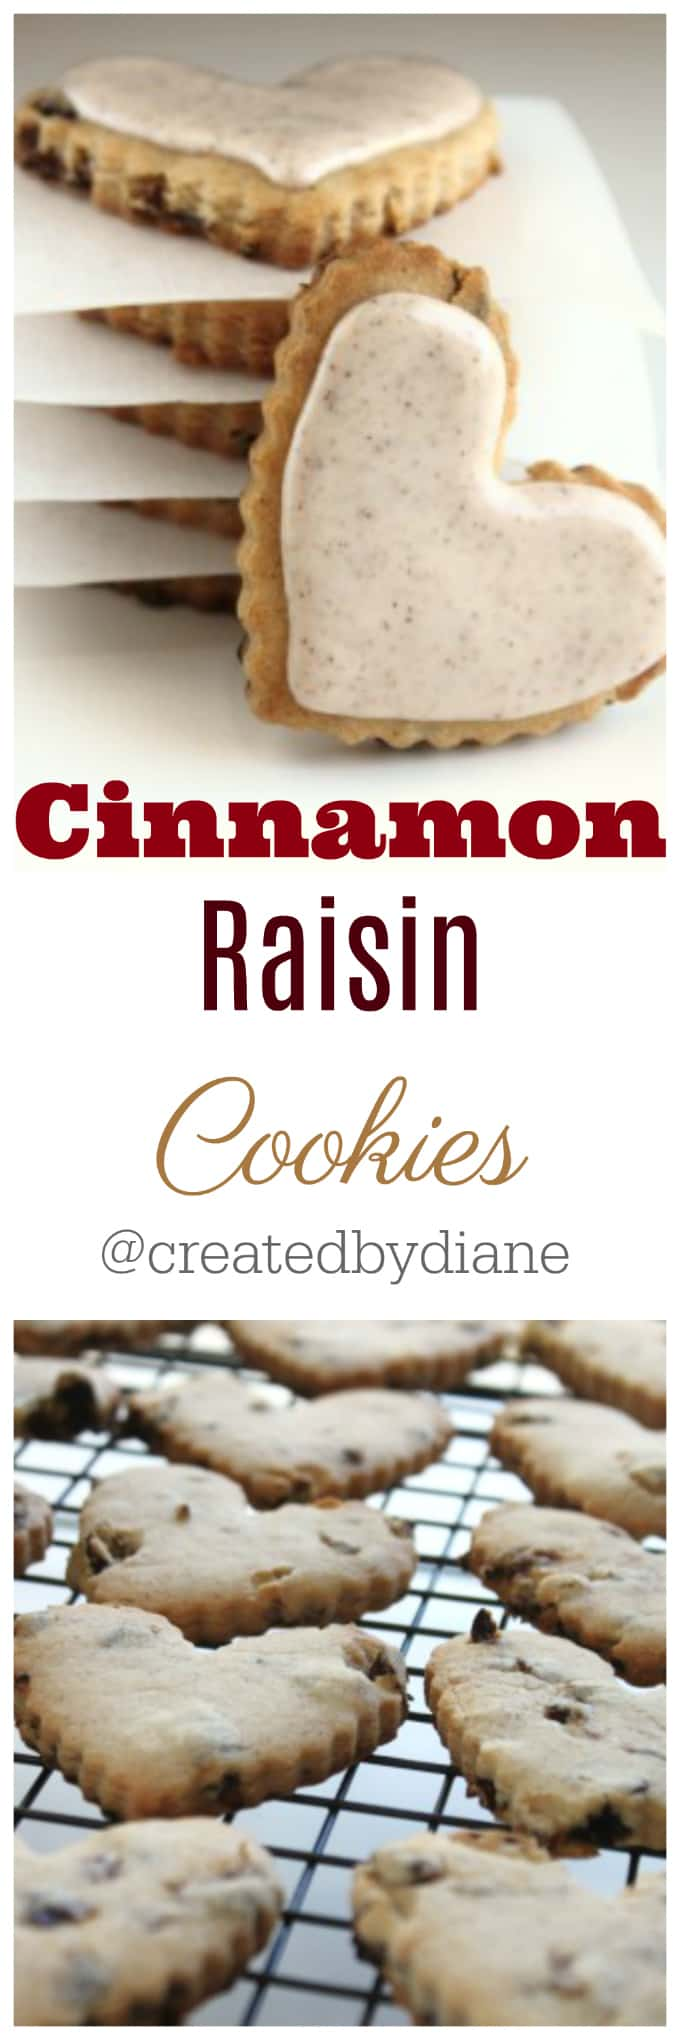 Cinnamon Raisin Cut Out Cookies @createdbydiane